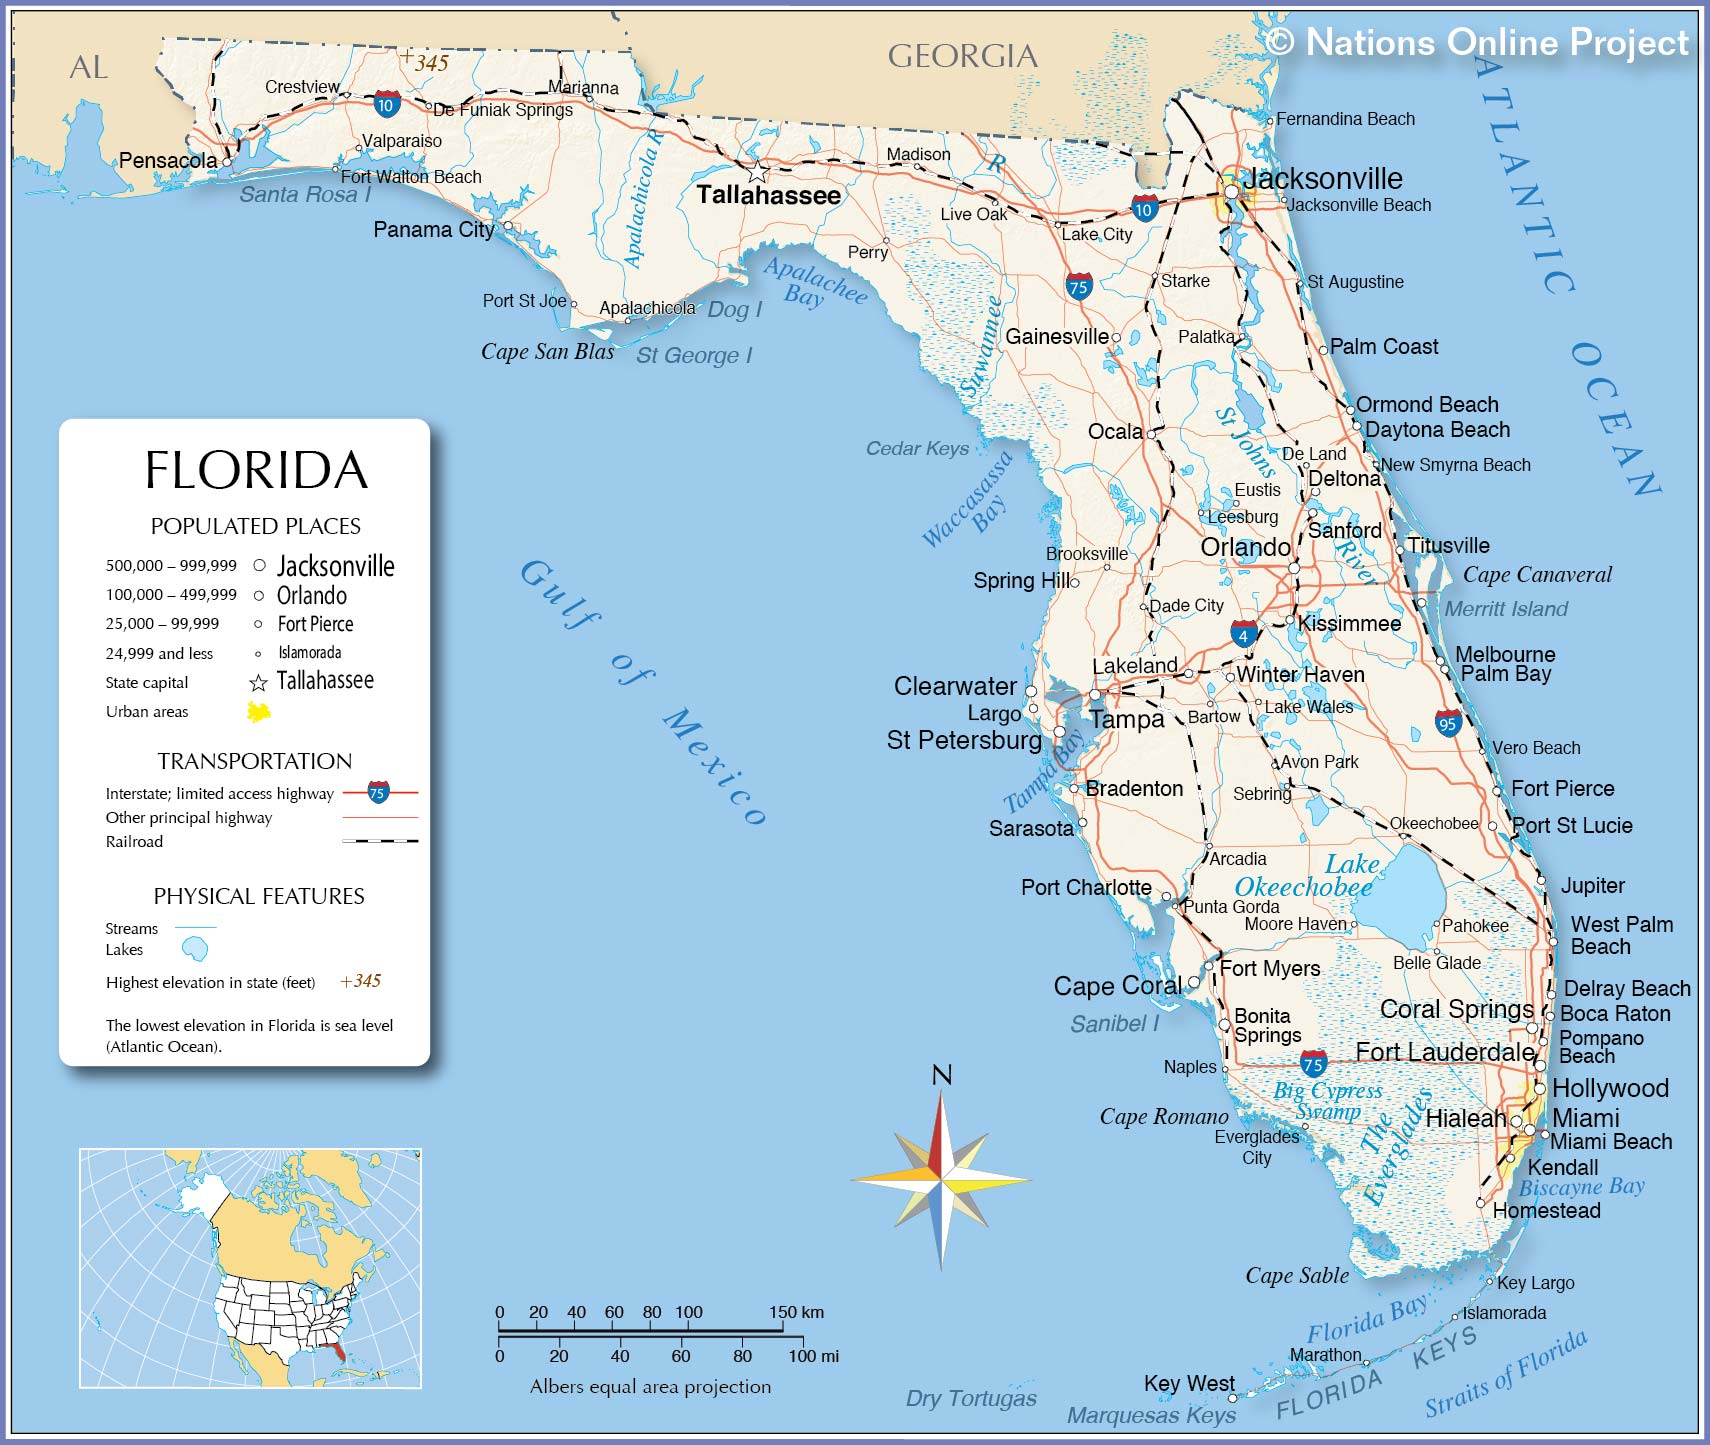 Reference Maps Of Florida, Usa - Nations Online Project - New Smyrna Beach Florida Map